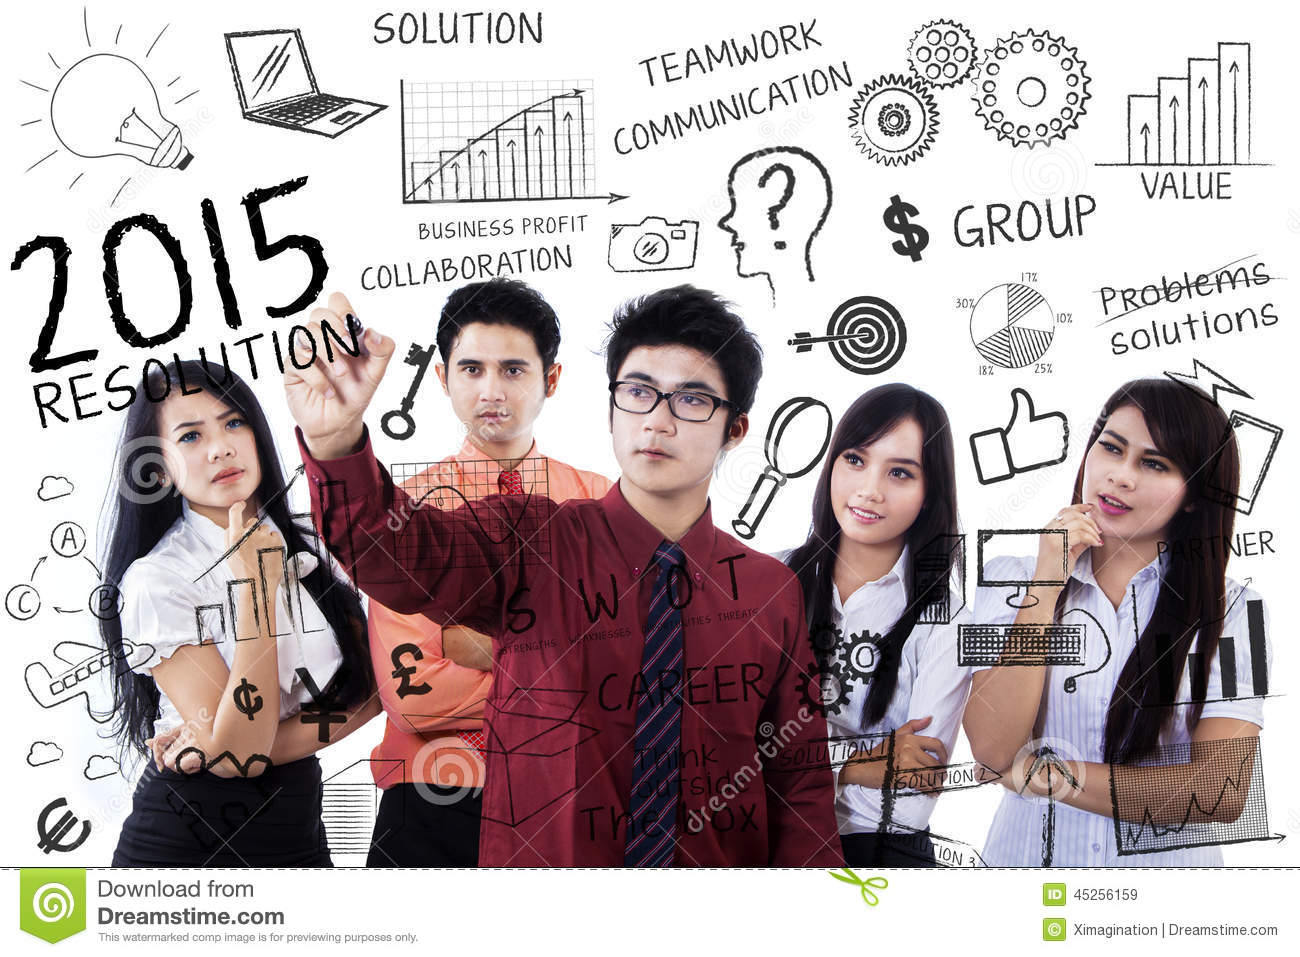 Ideas for Teen Businesses -